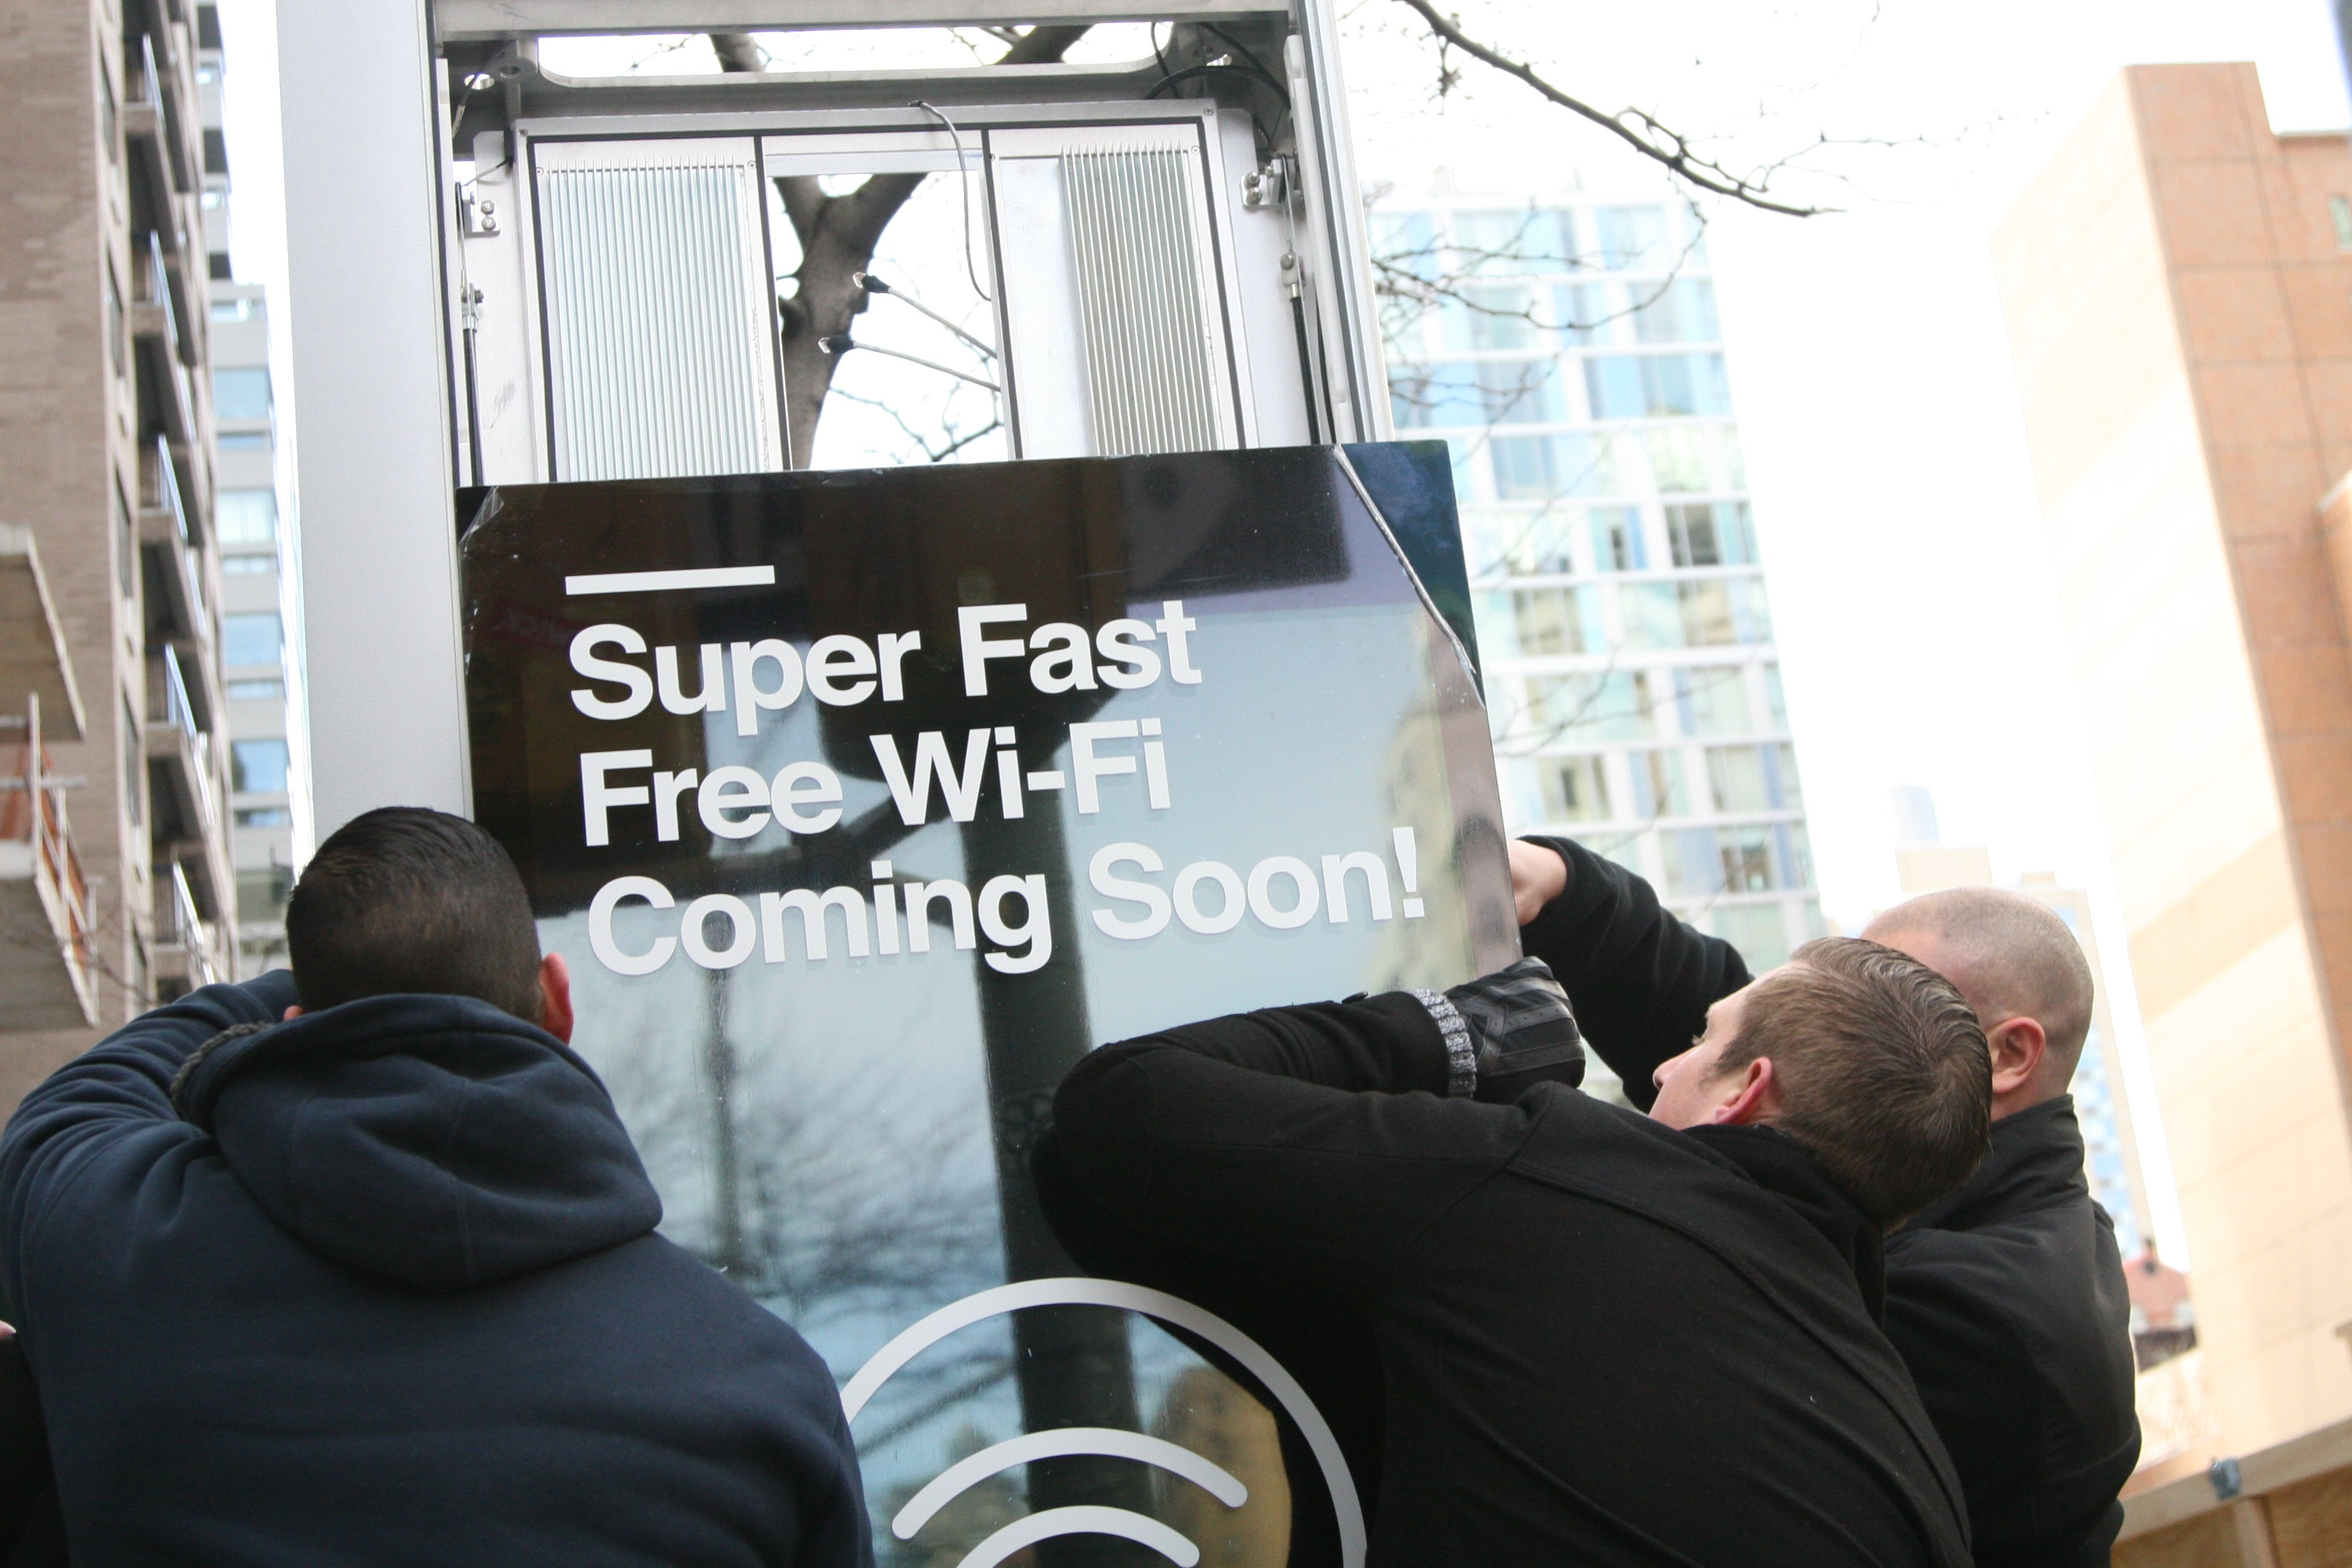 NYC's New Gigabit Wifi Hotspots Work Like Payphones From the Future